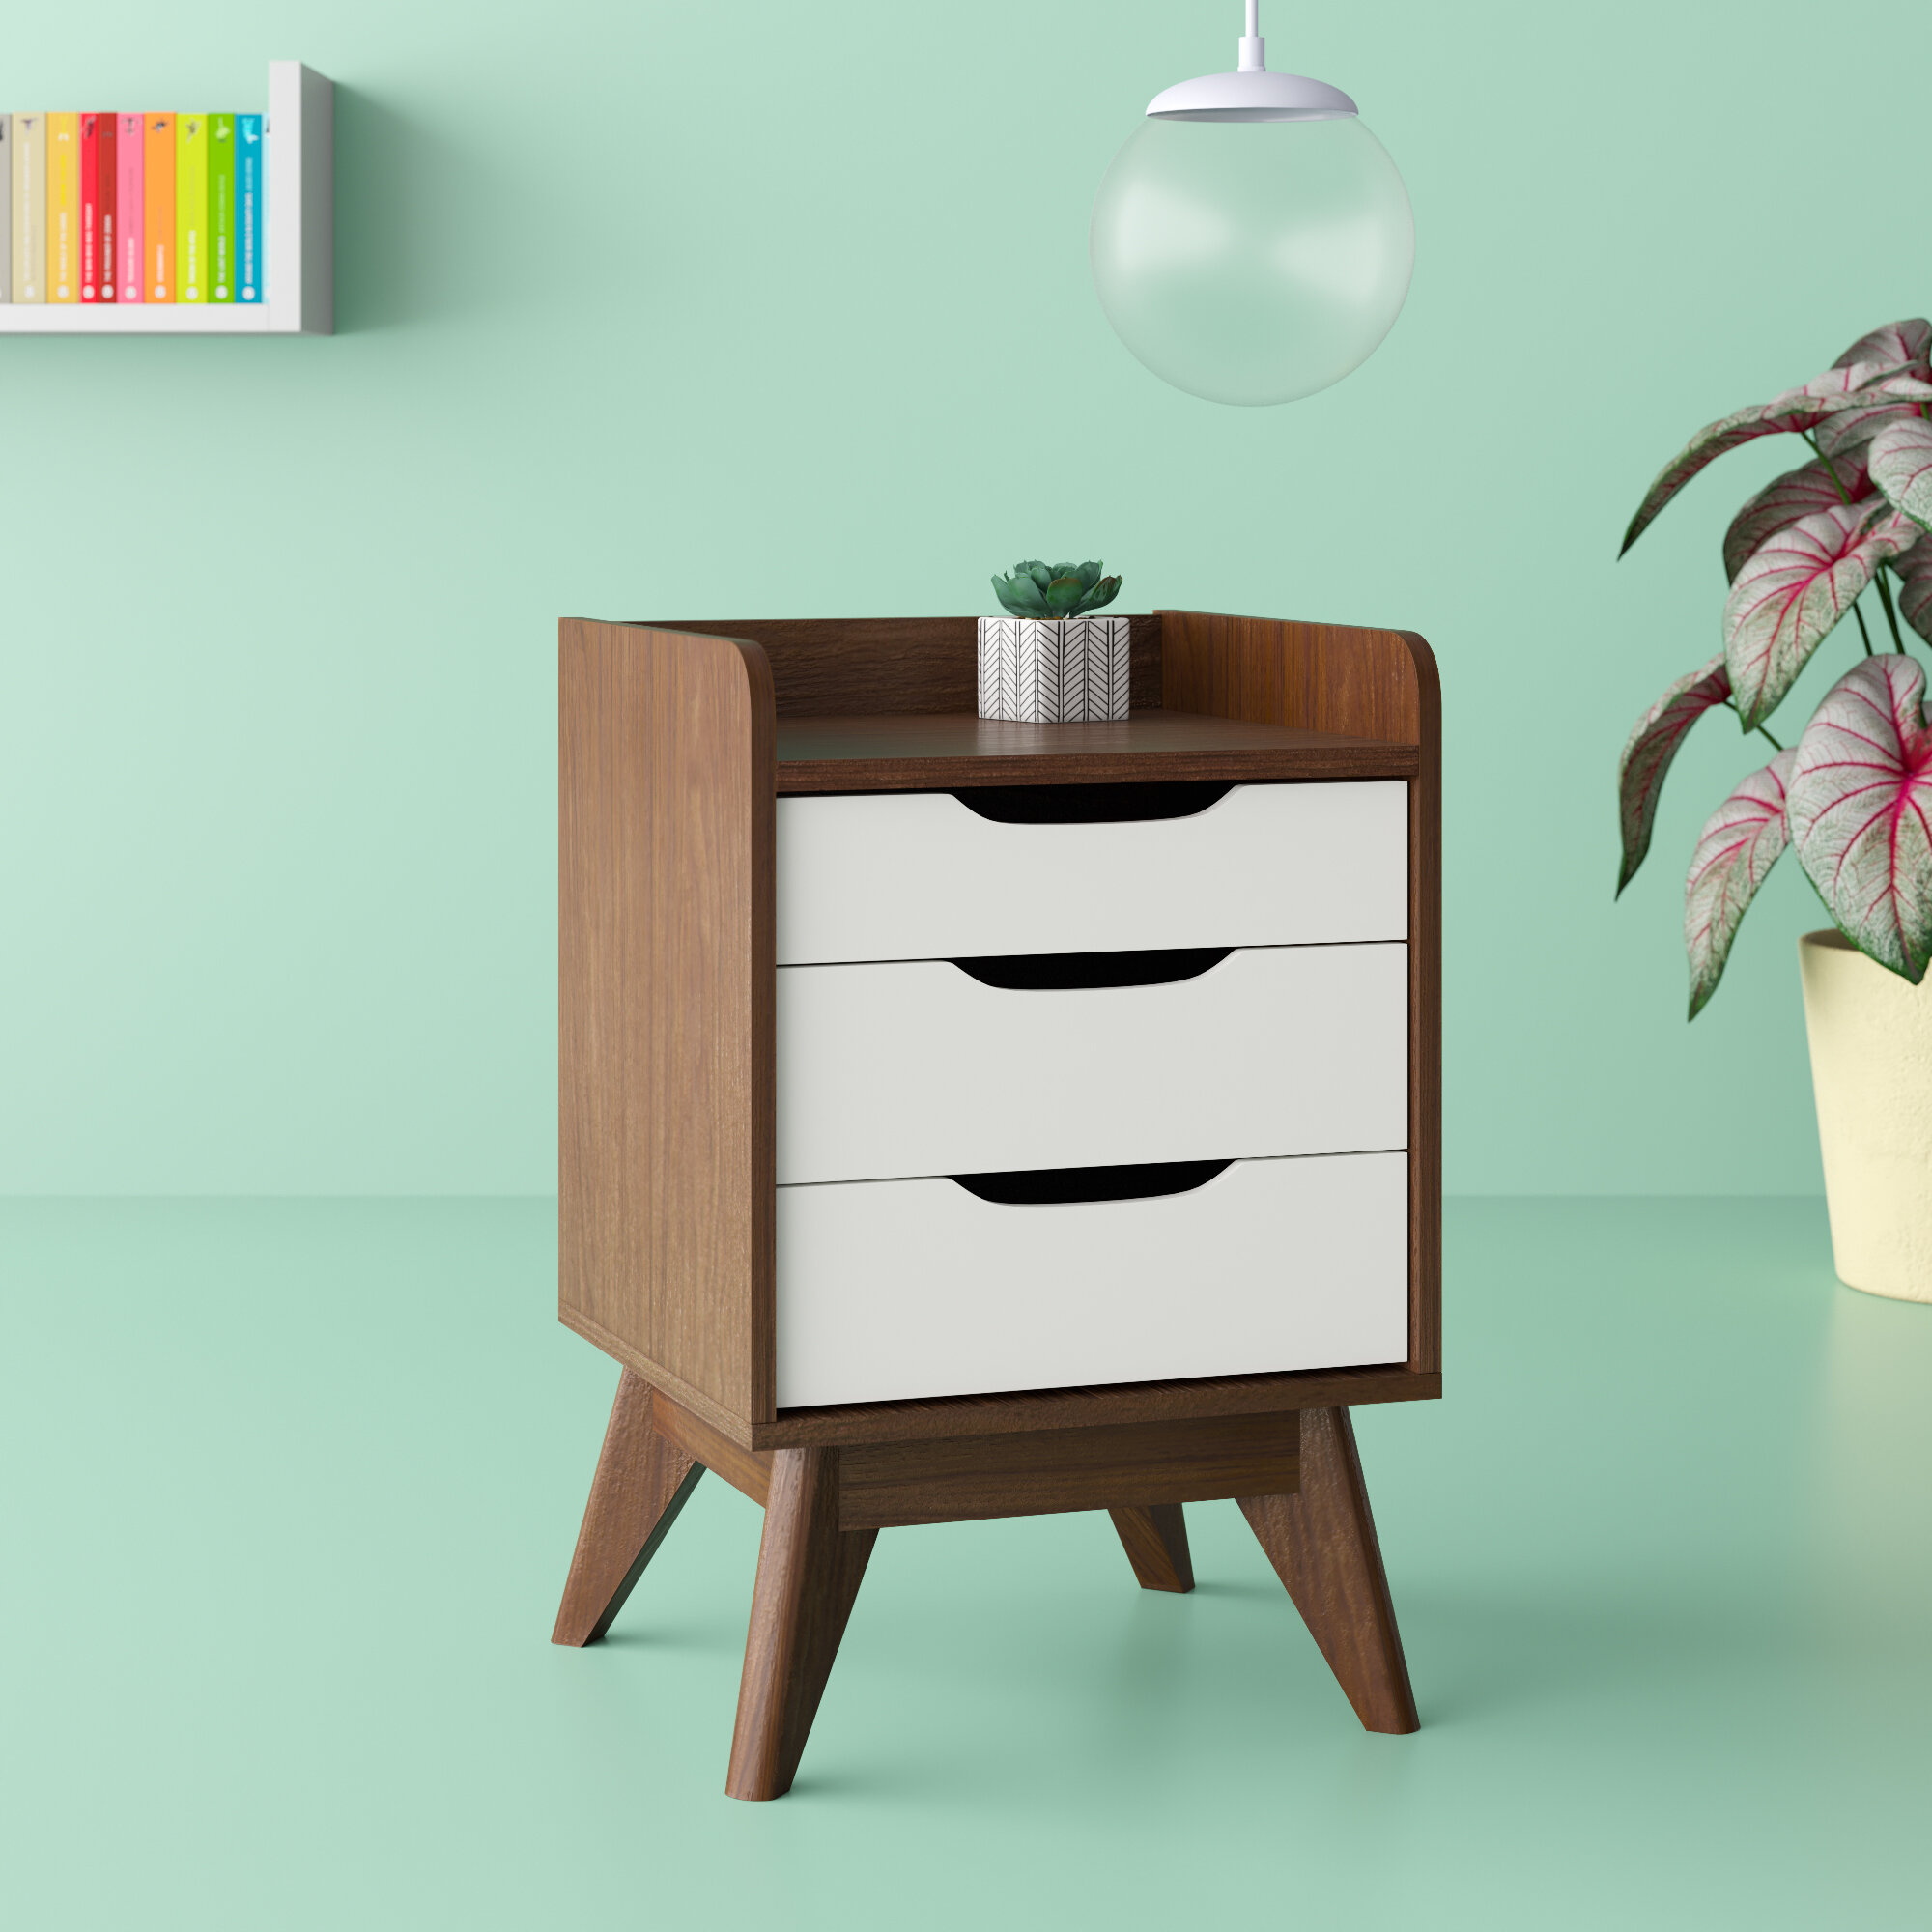 Mid Century Scandi Style Bedside Table Painted 2 Toned 3 Cut Out Drawers Pink